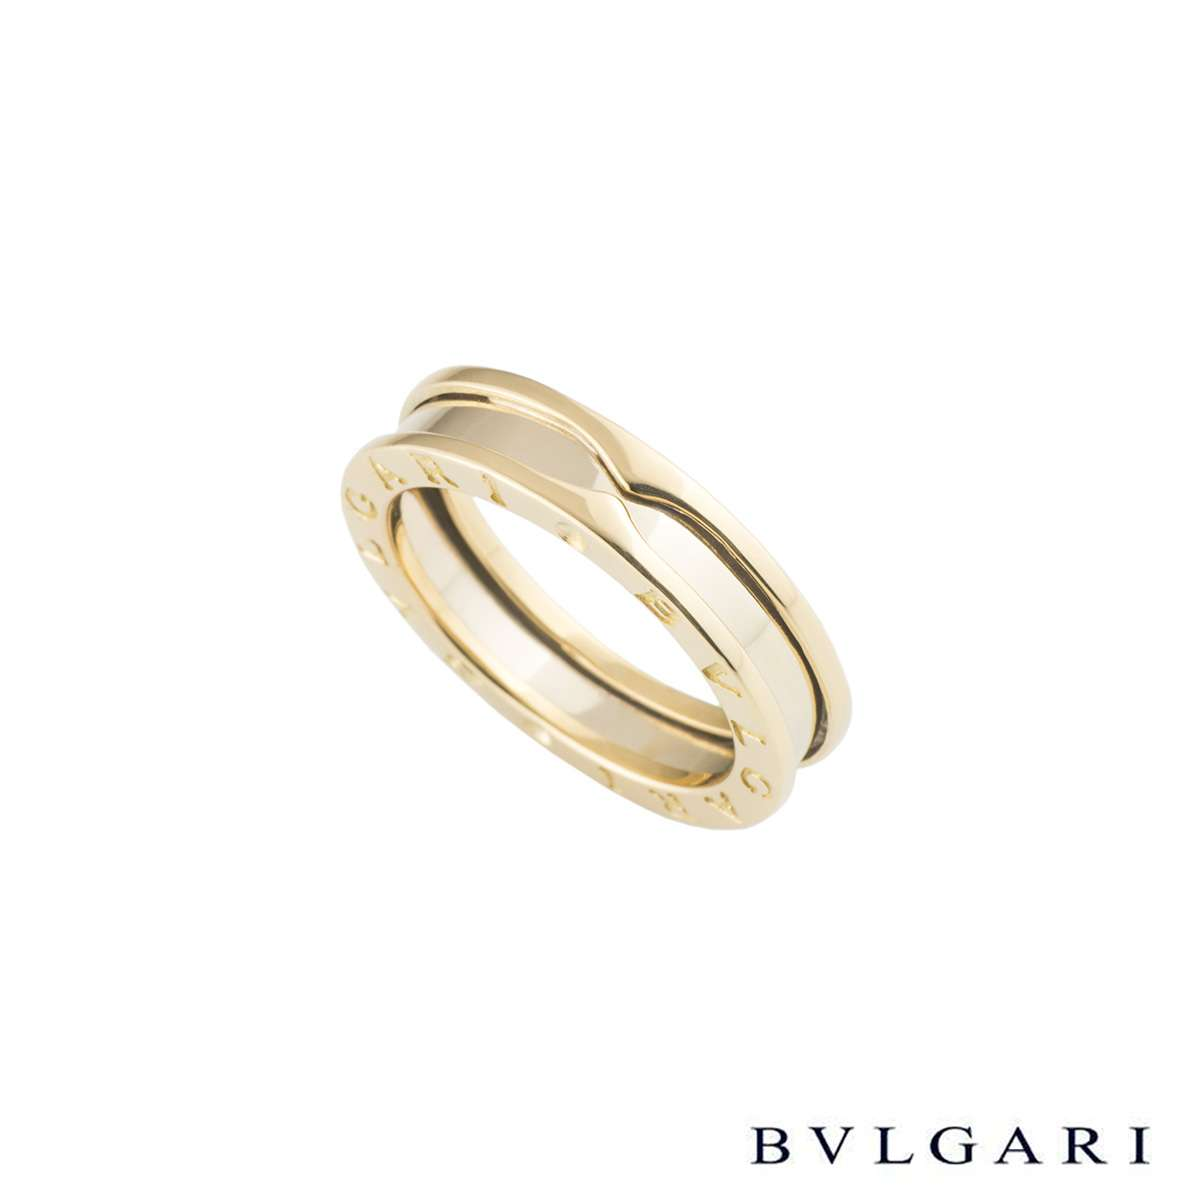 Bvlgari Yellow Gold B.zero1 Ring